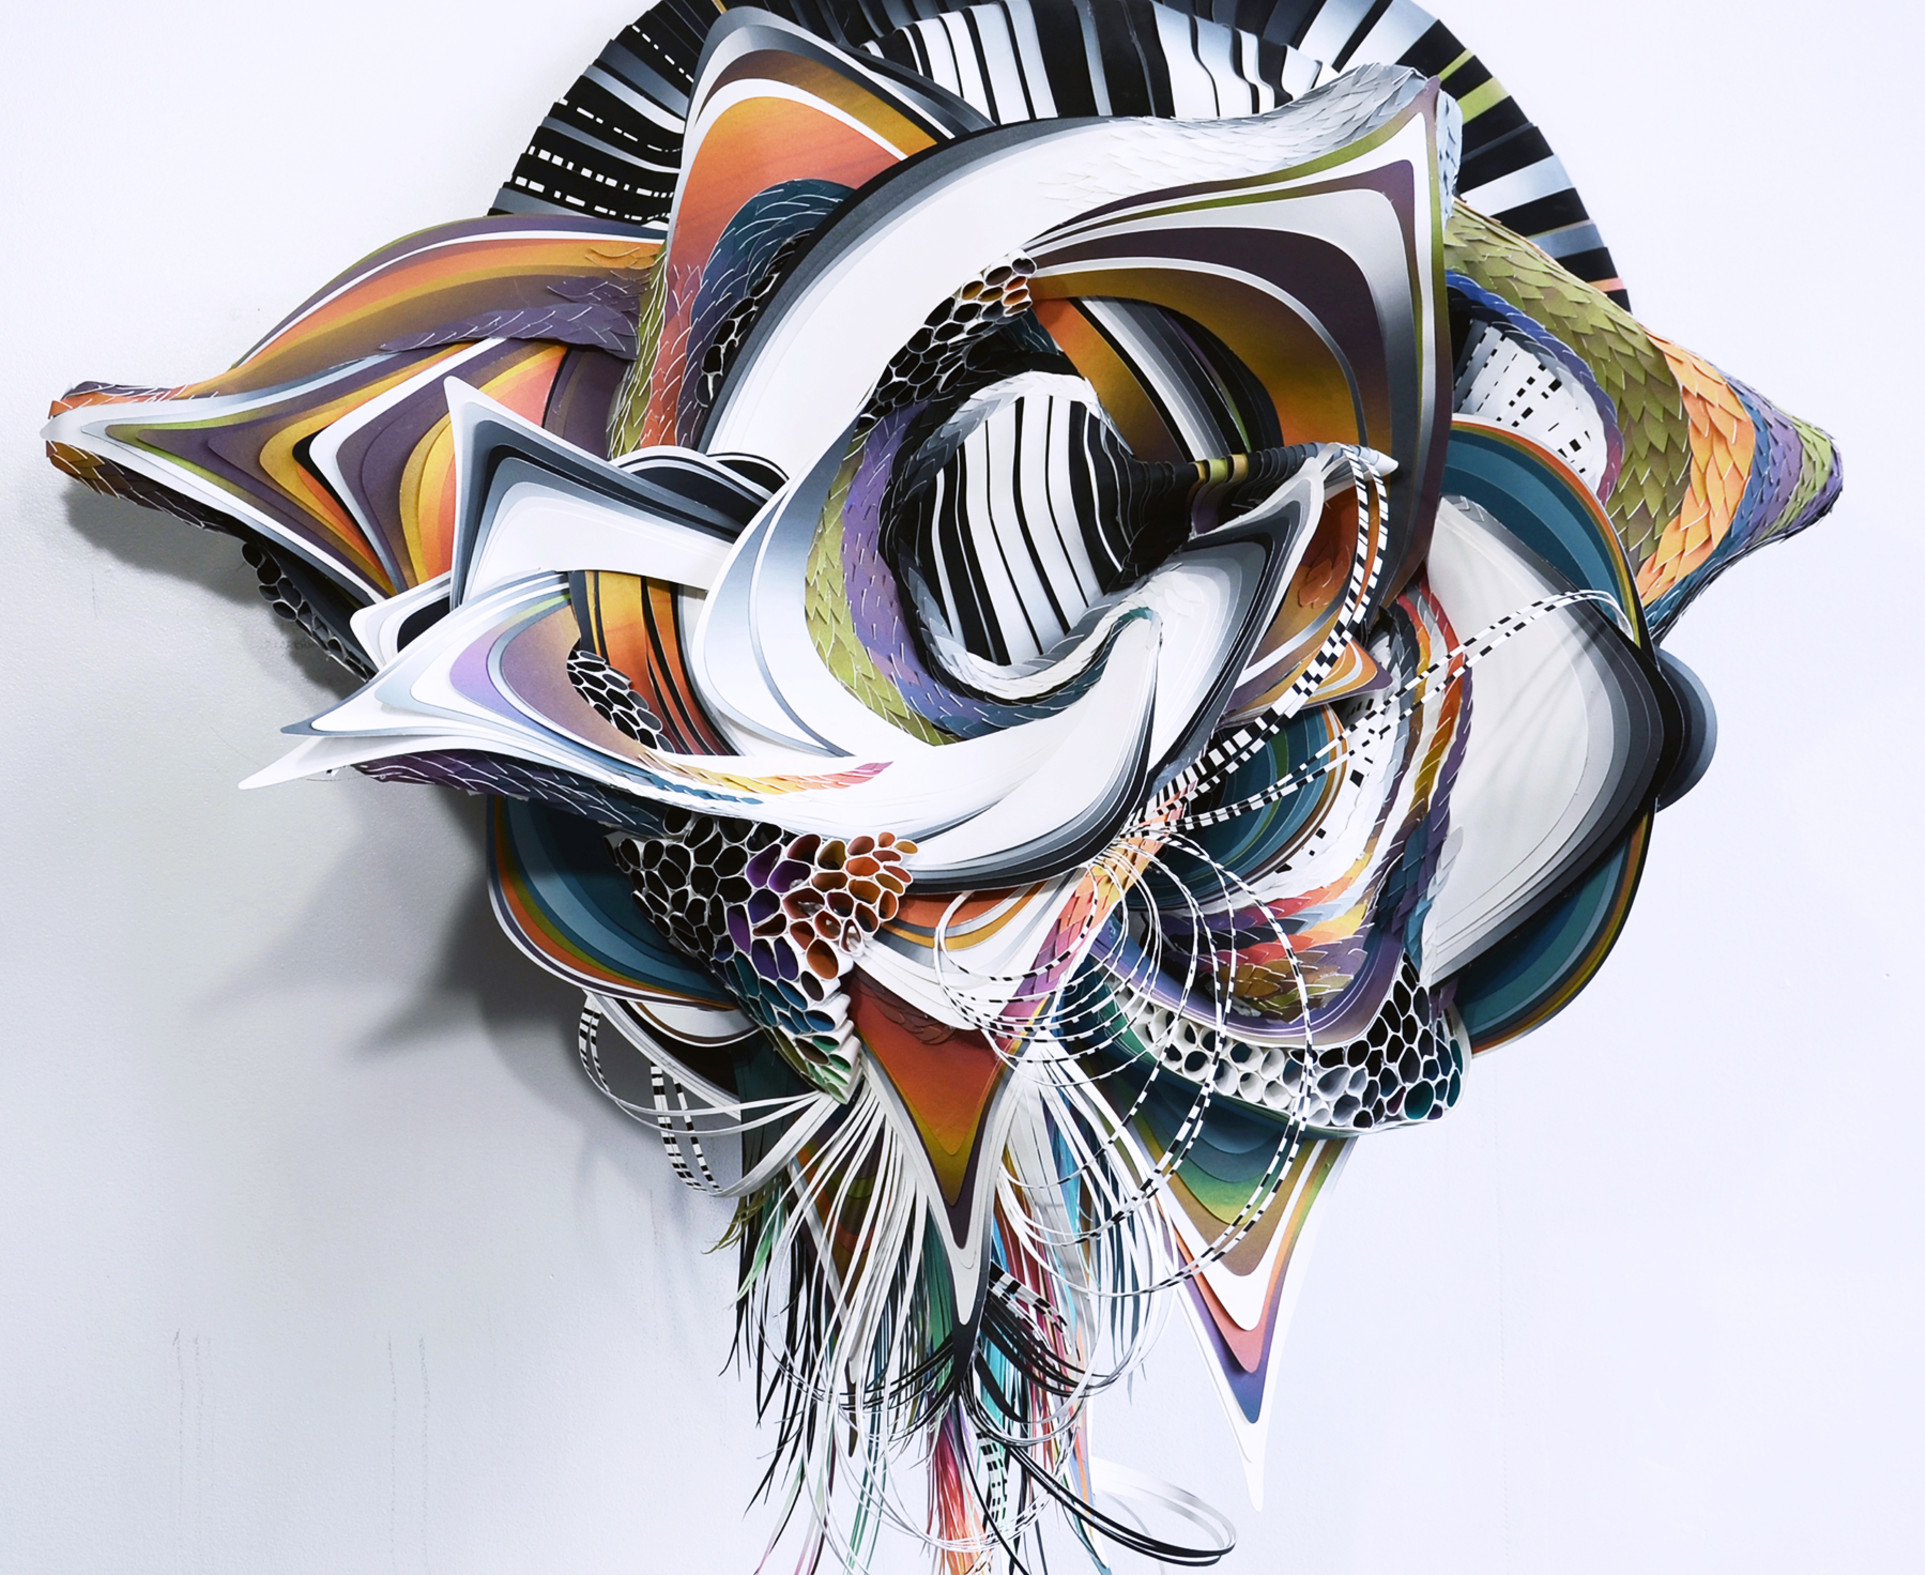 Crystal Wagner, Vexo, 2018